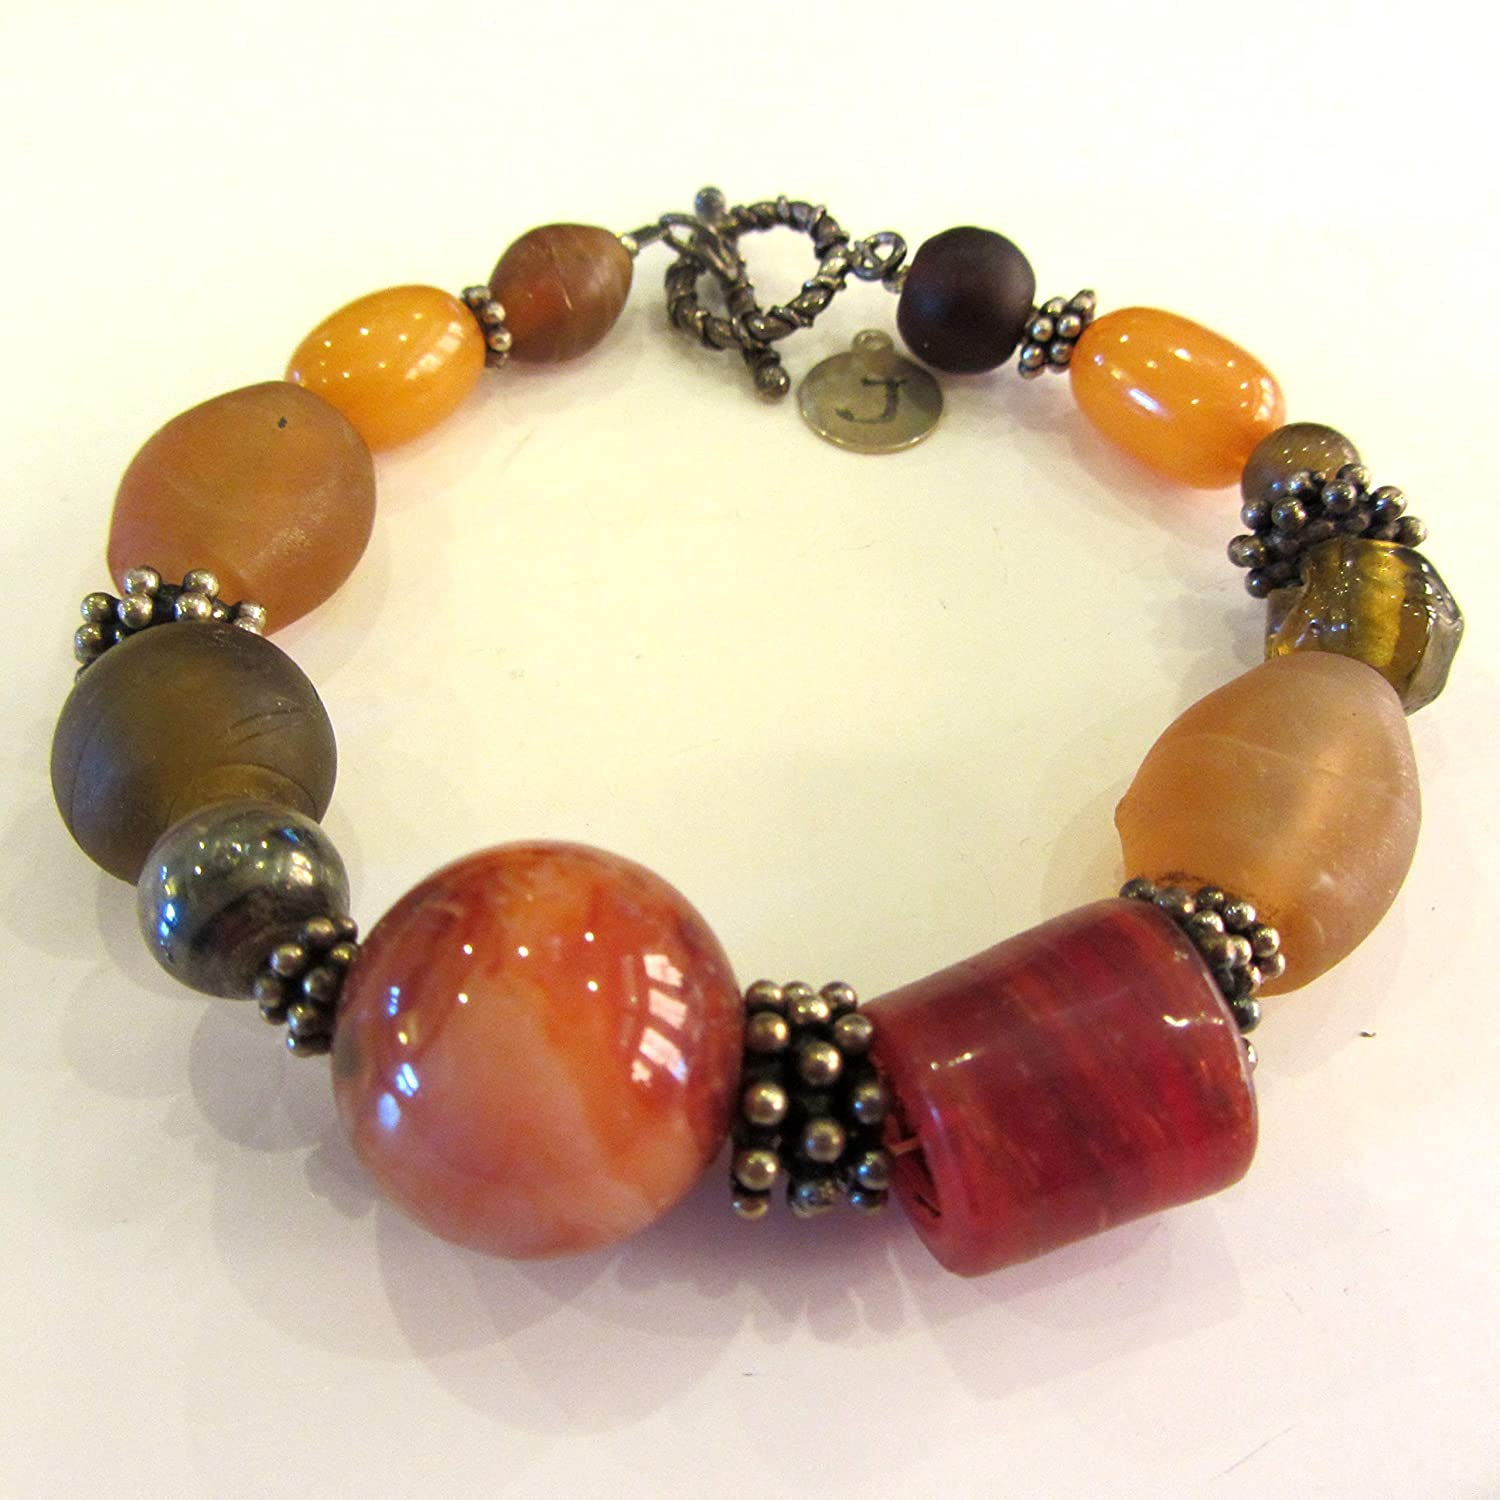 67% OFF of fixed price Vintage Max 88% OFF Amber Browns and Rust Glass Colored Sterling Beads with